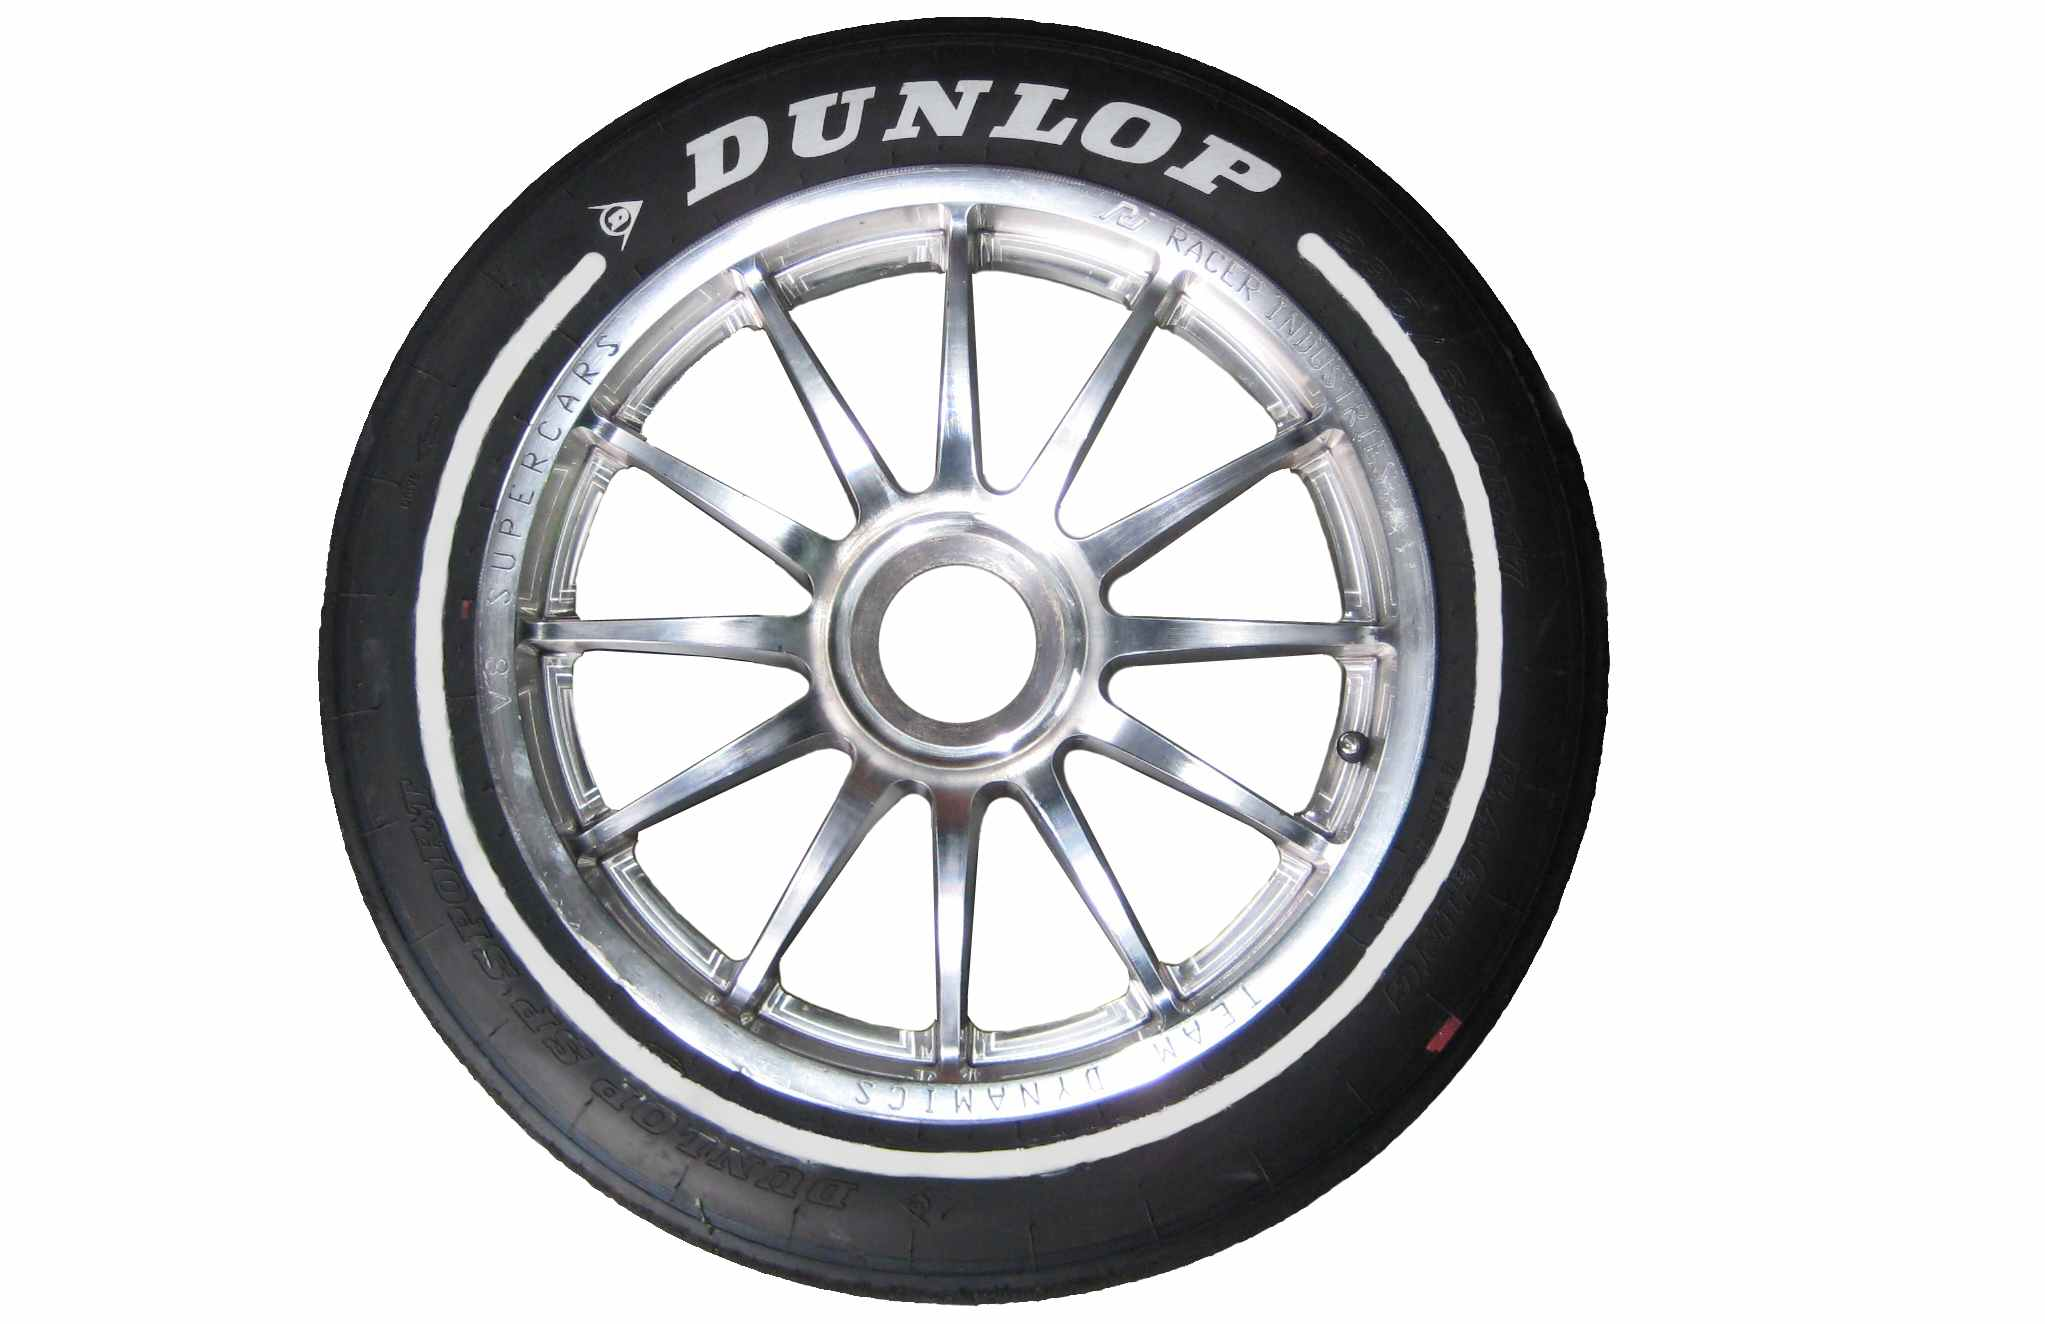 Colour bands return to Dunlop Sprint tyres